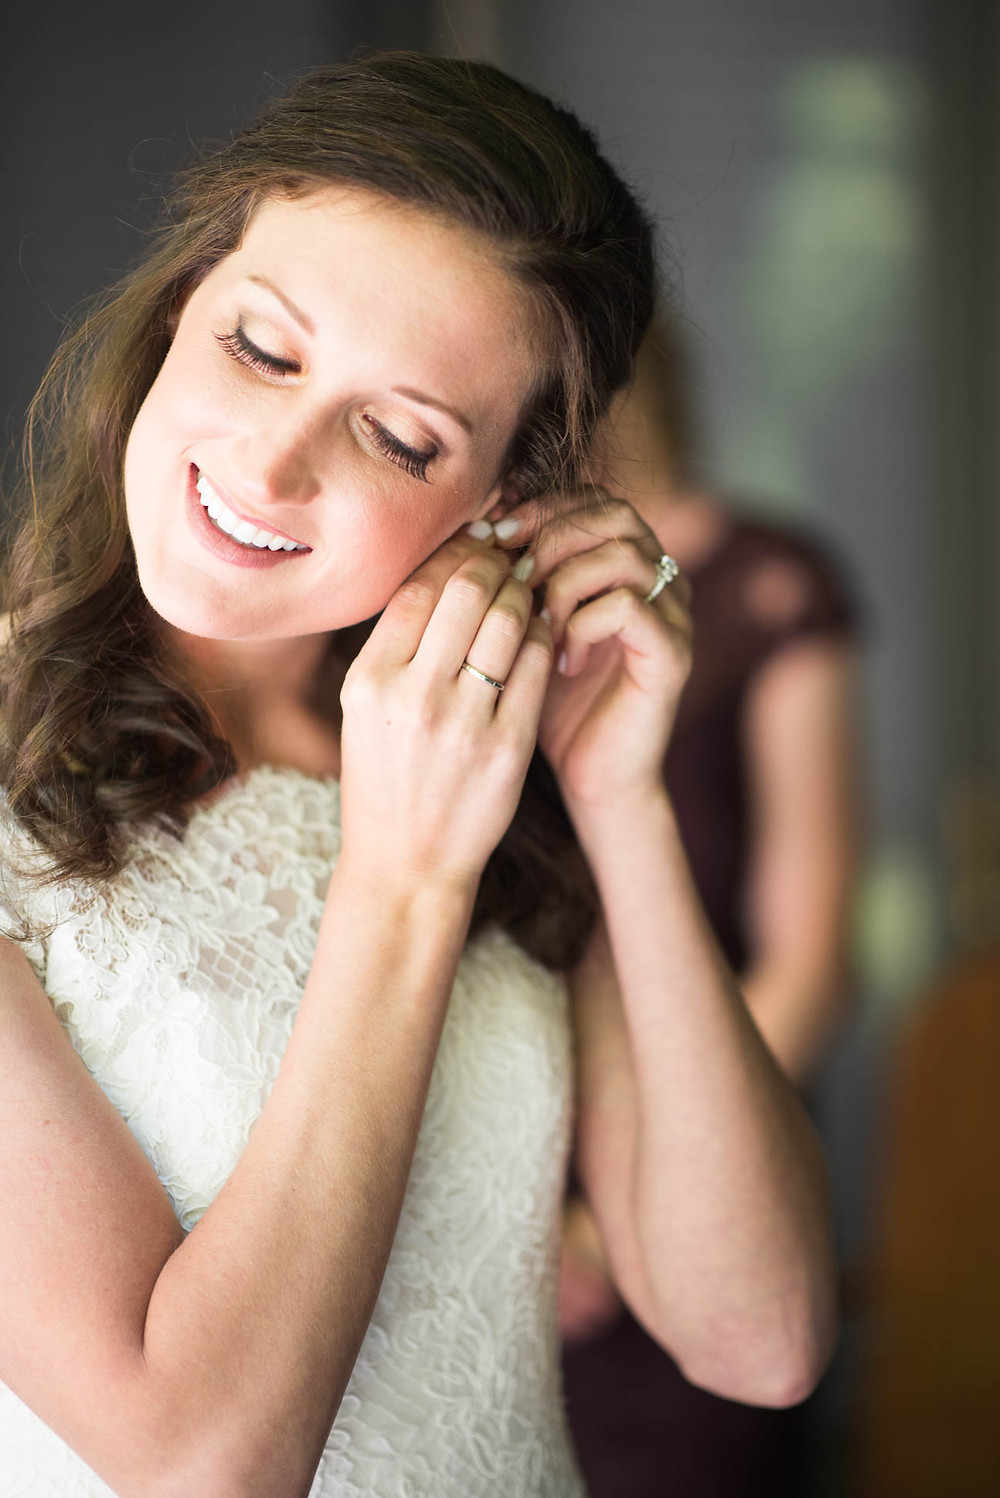 Katie puts in her bridal earrings before her ceremony